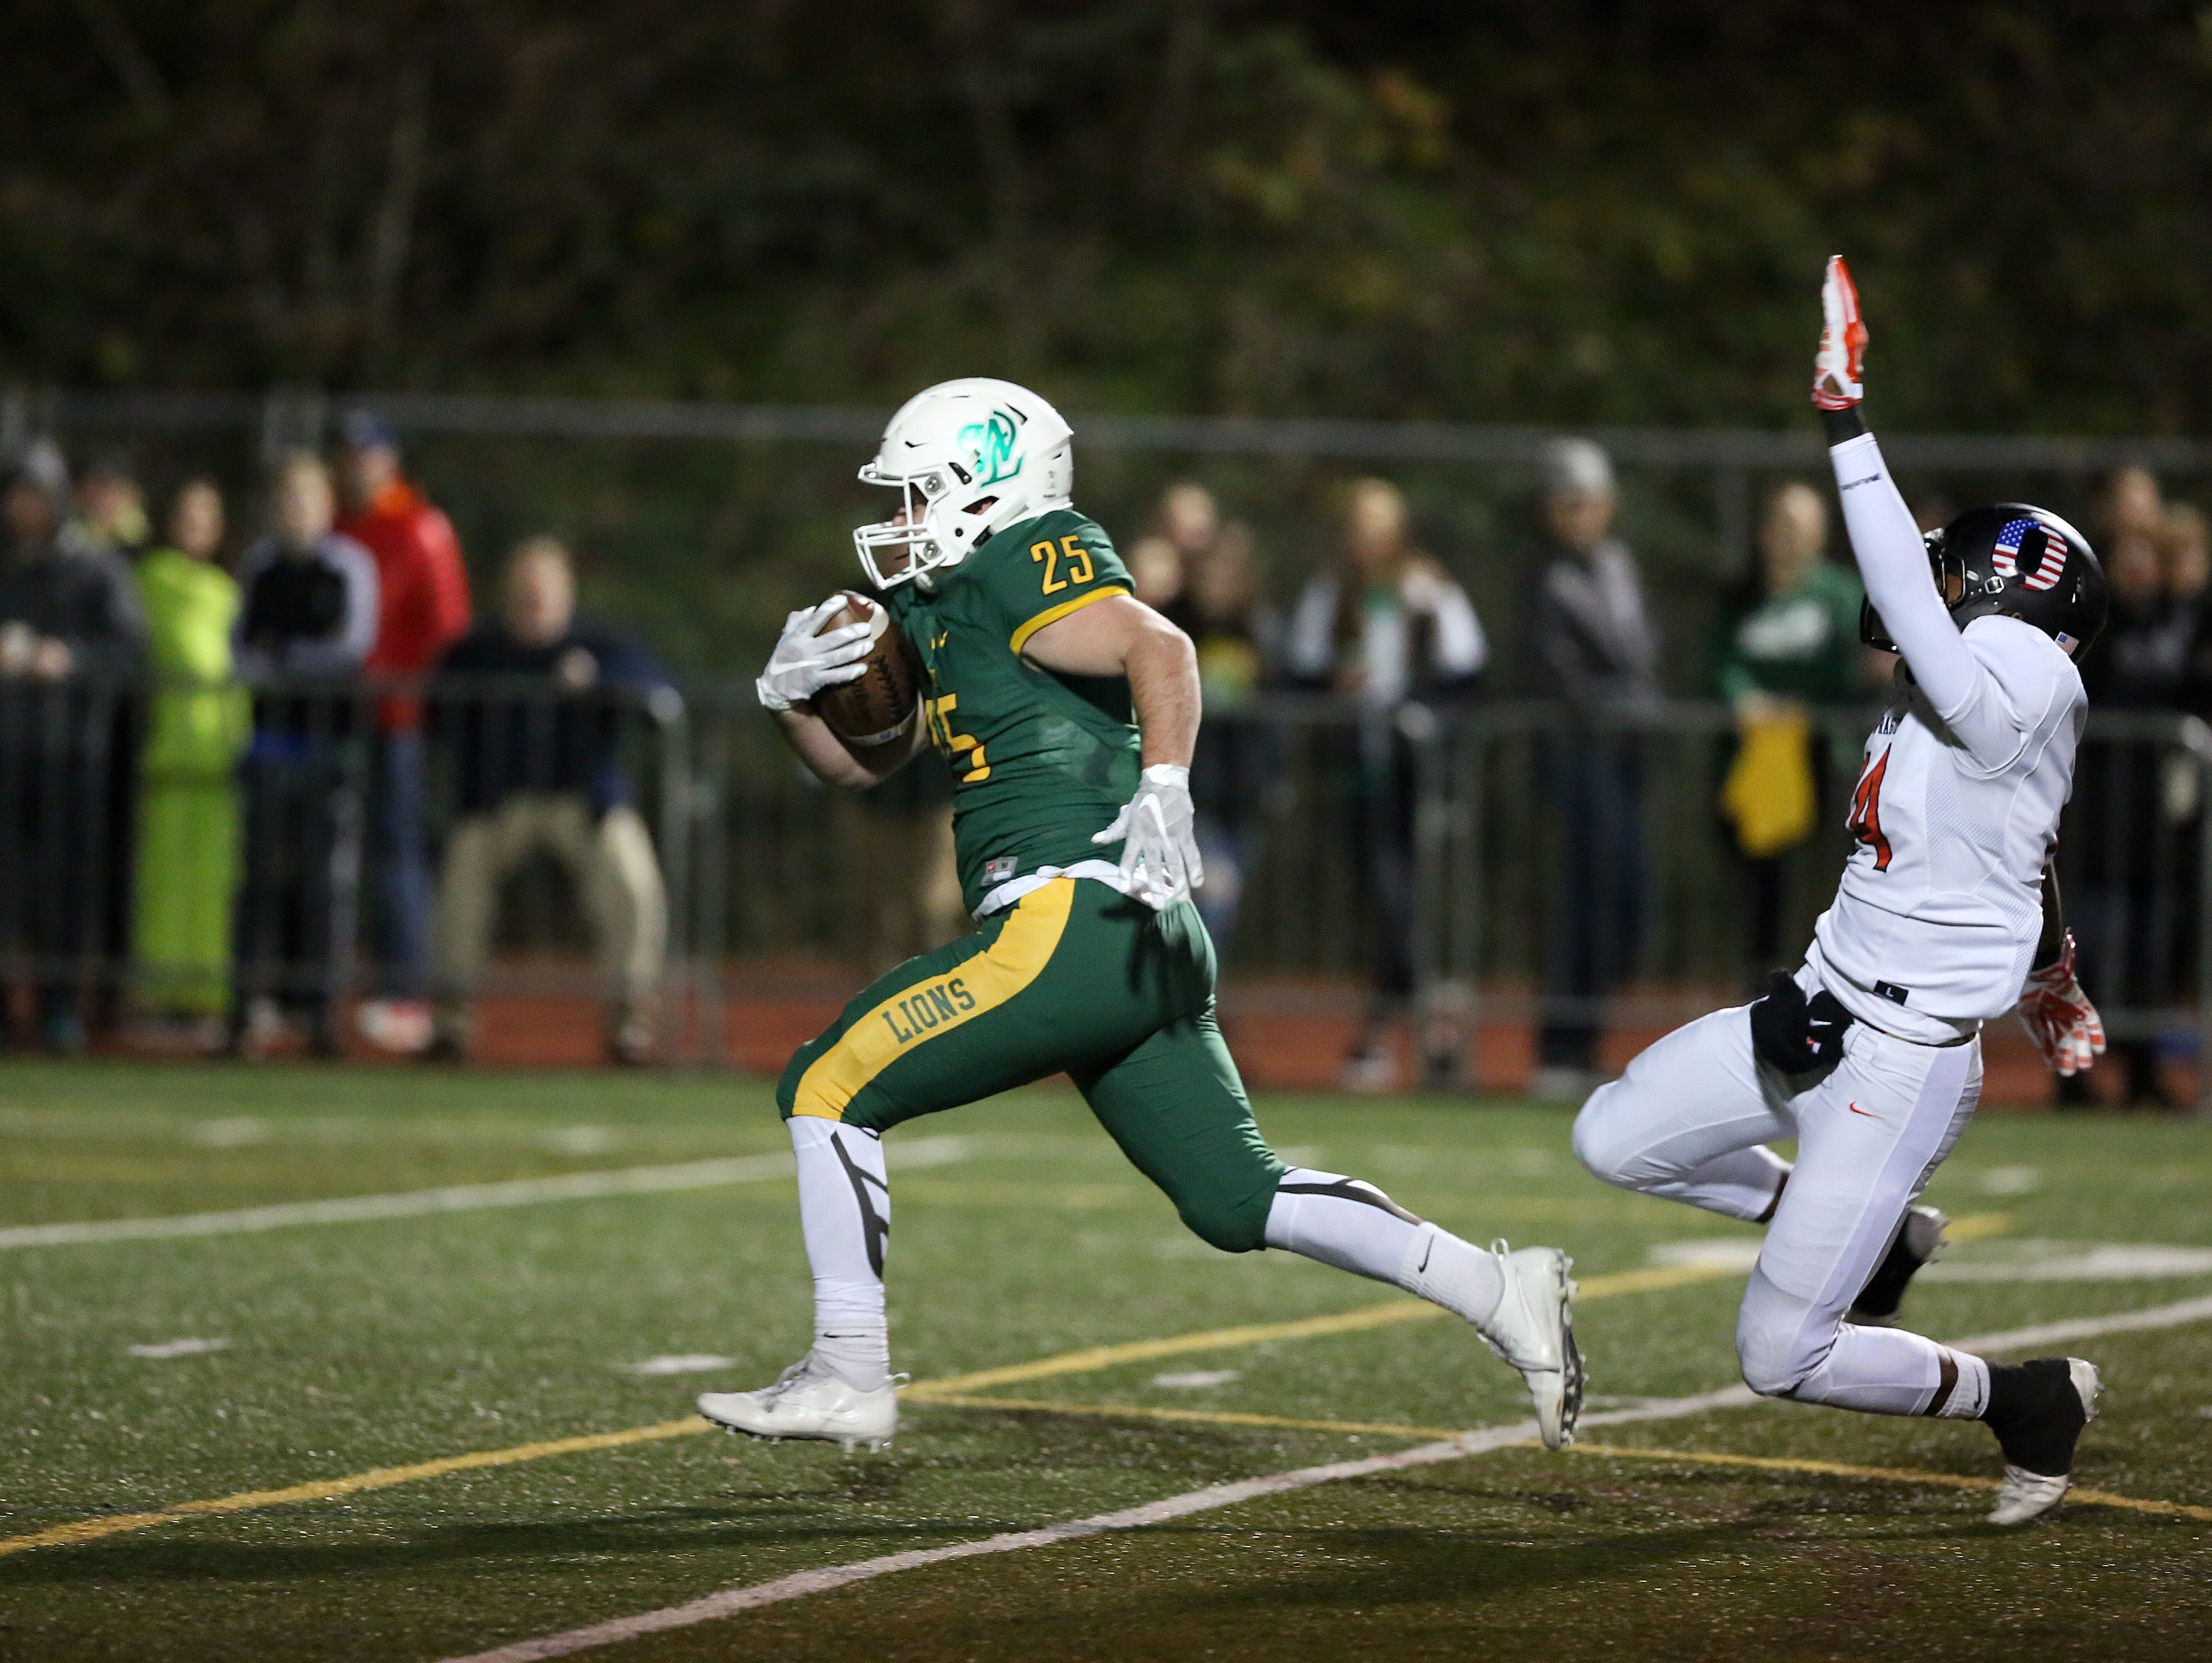 Sprague's Jailen Hammer tries to take down West Linn's Tyler Good as the Olys fall to West Linn 56-20 in the OSAA Class 6A state quarterfinals on Friday, Nov. 18, 2016, at West Linn High School.